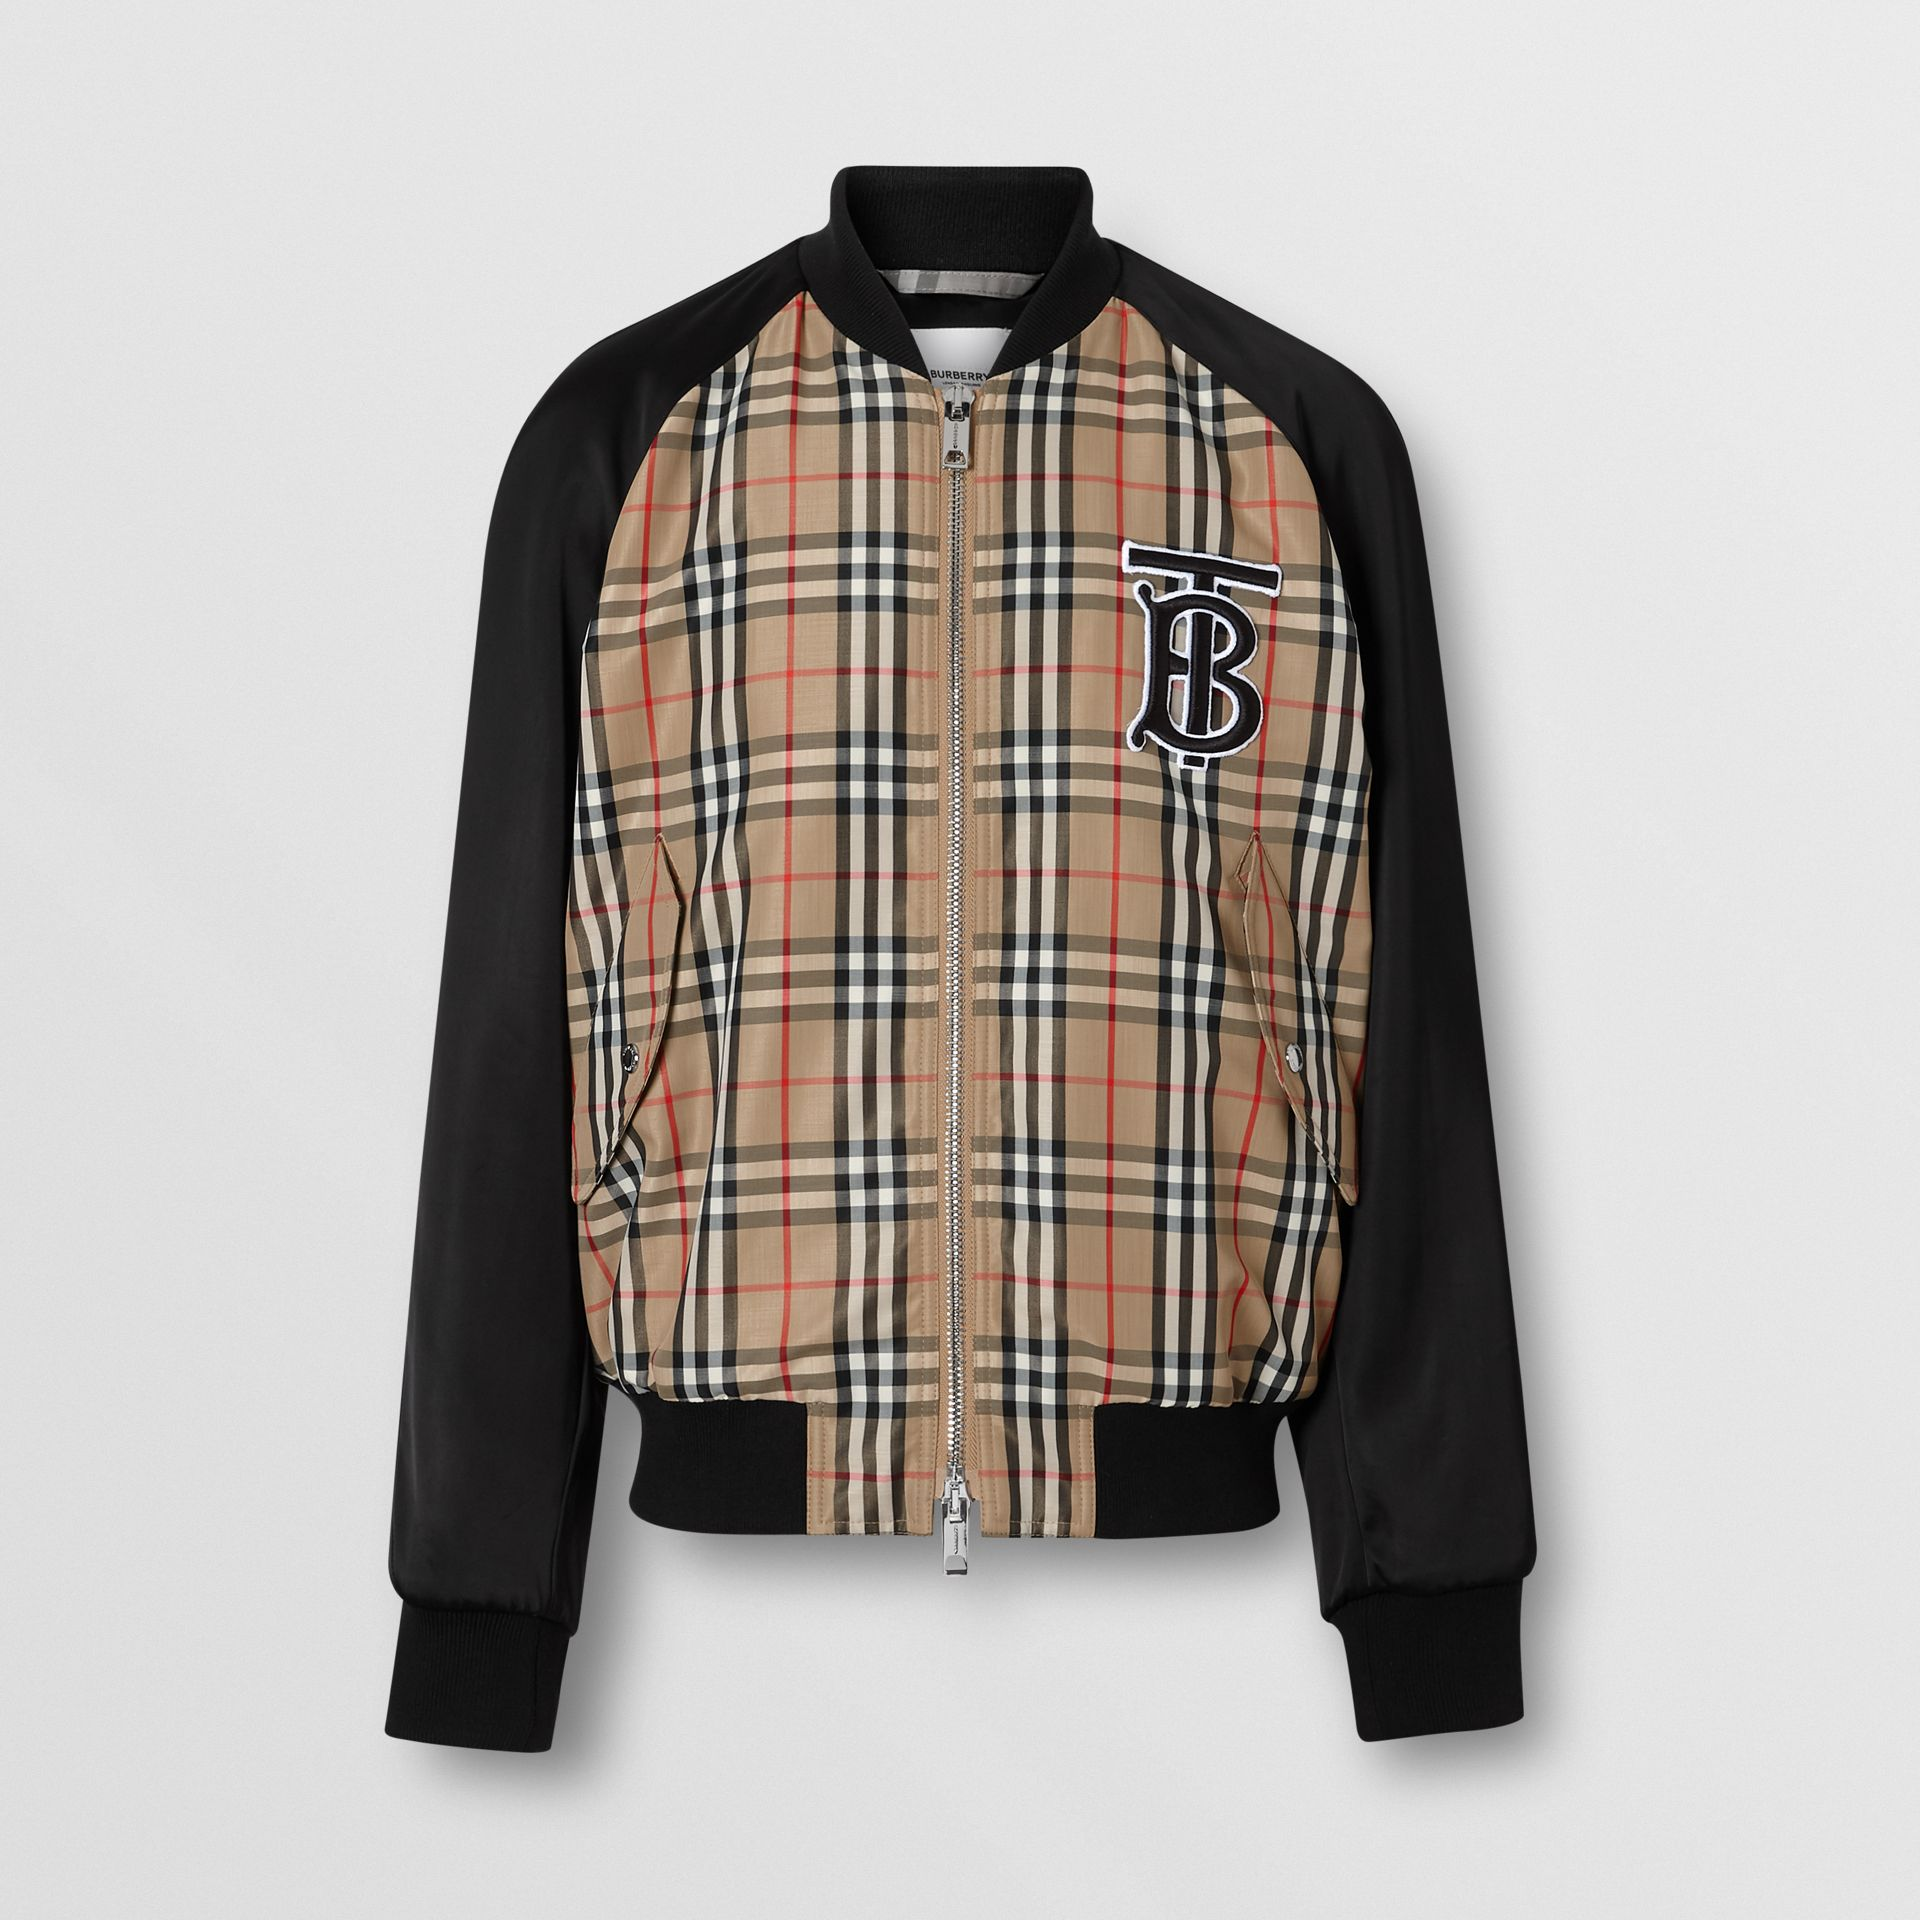 Monogram Motif Vintage Check Nylon Bomber Jacket in Archive Beige - Men | Burberry United States - gallery image 2